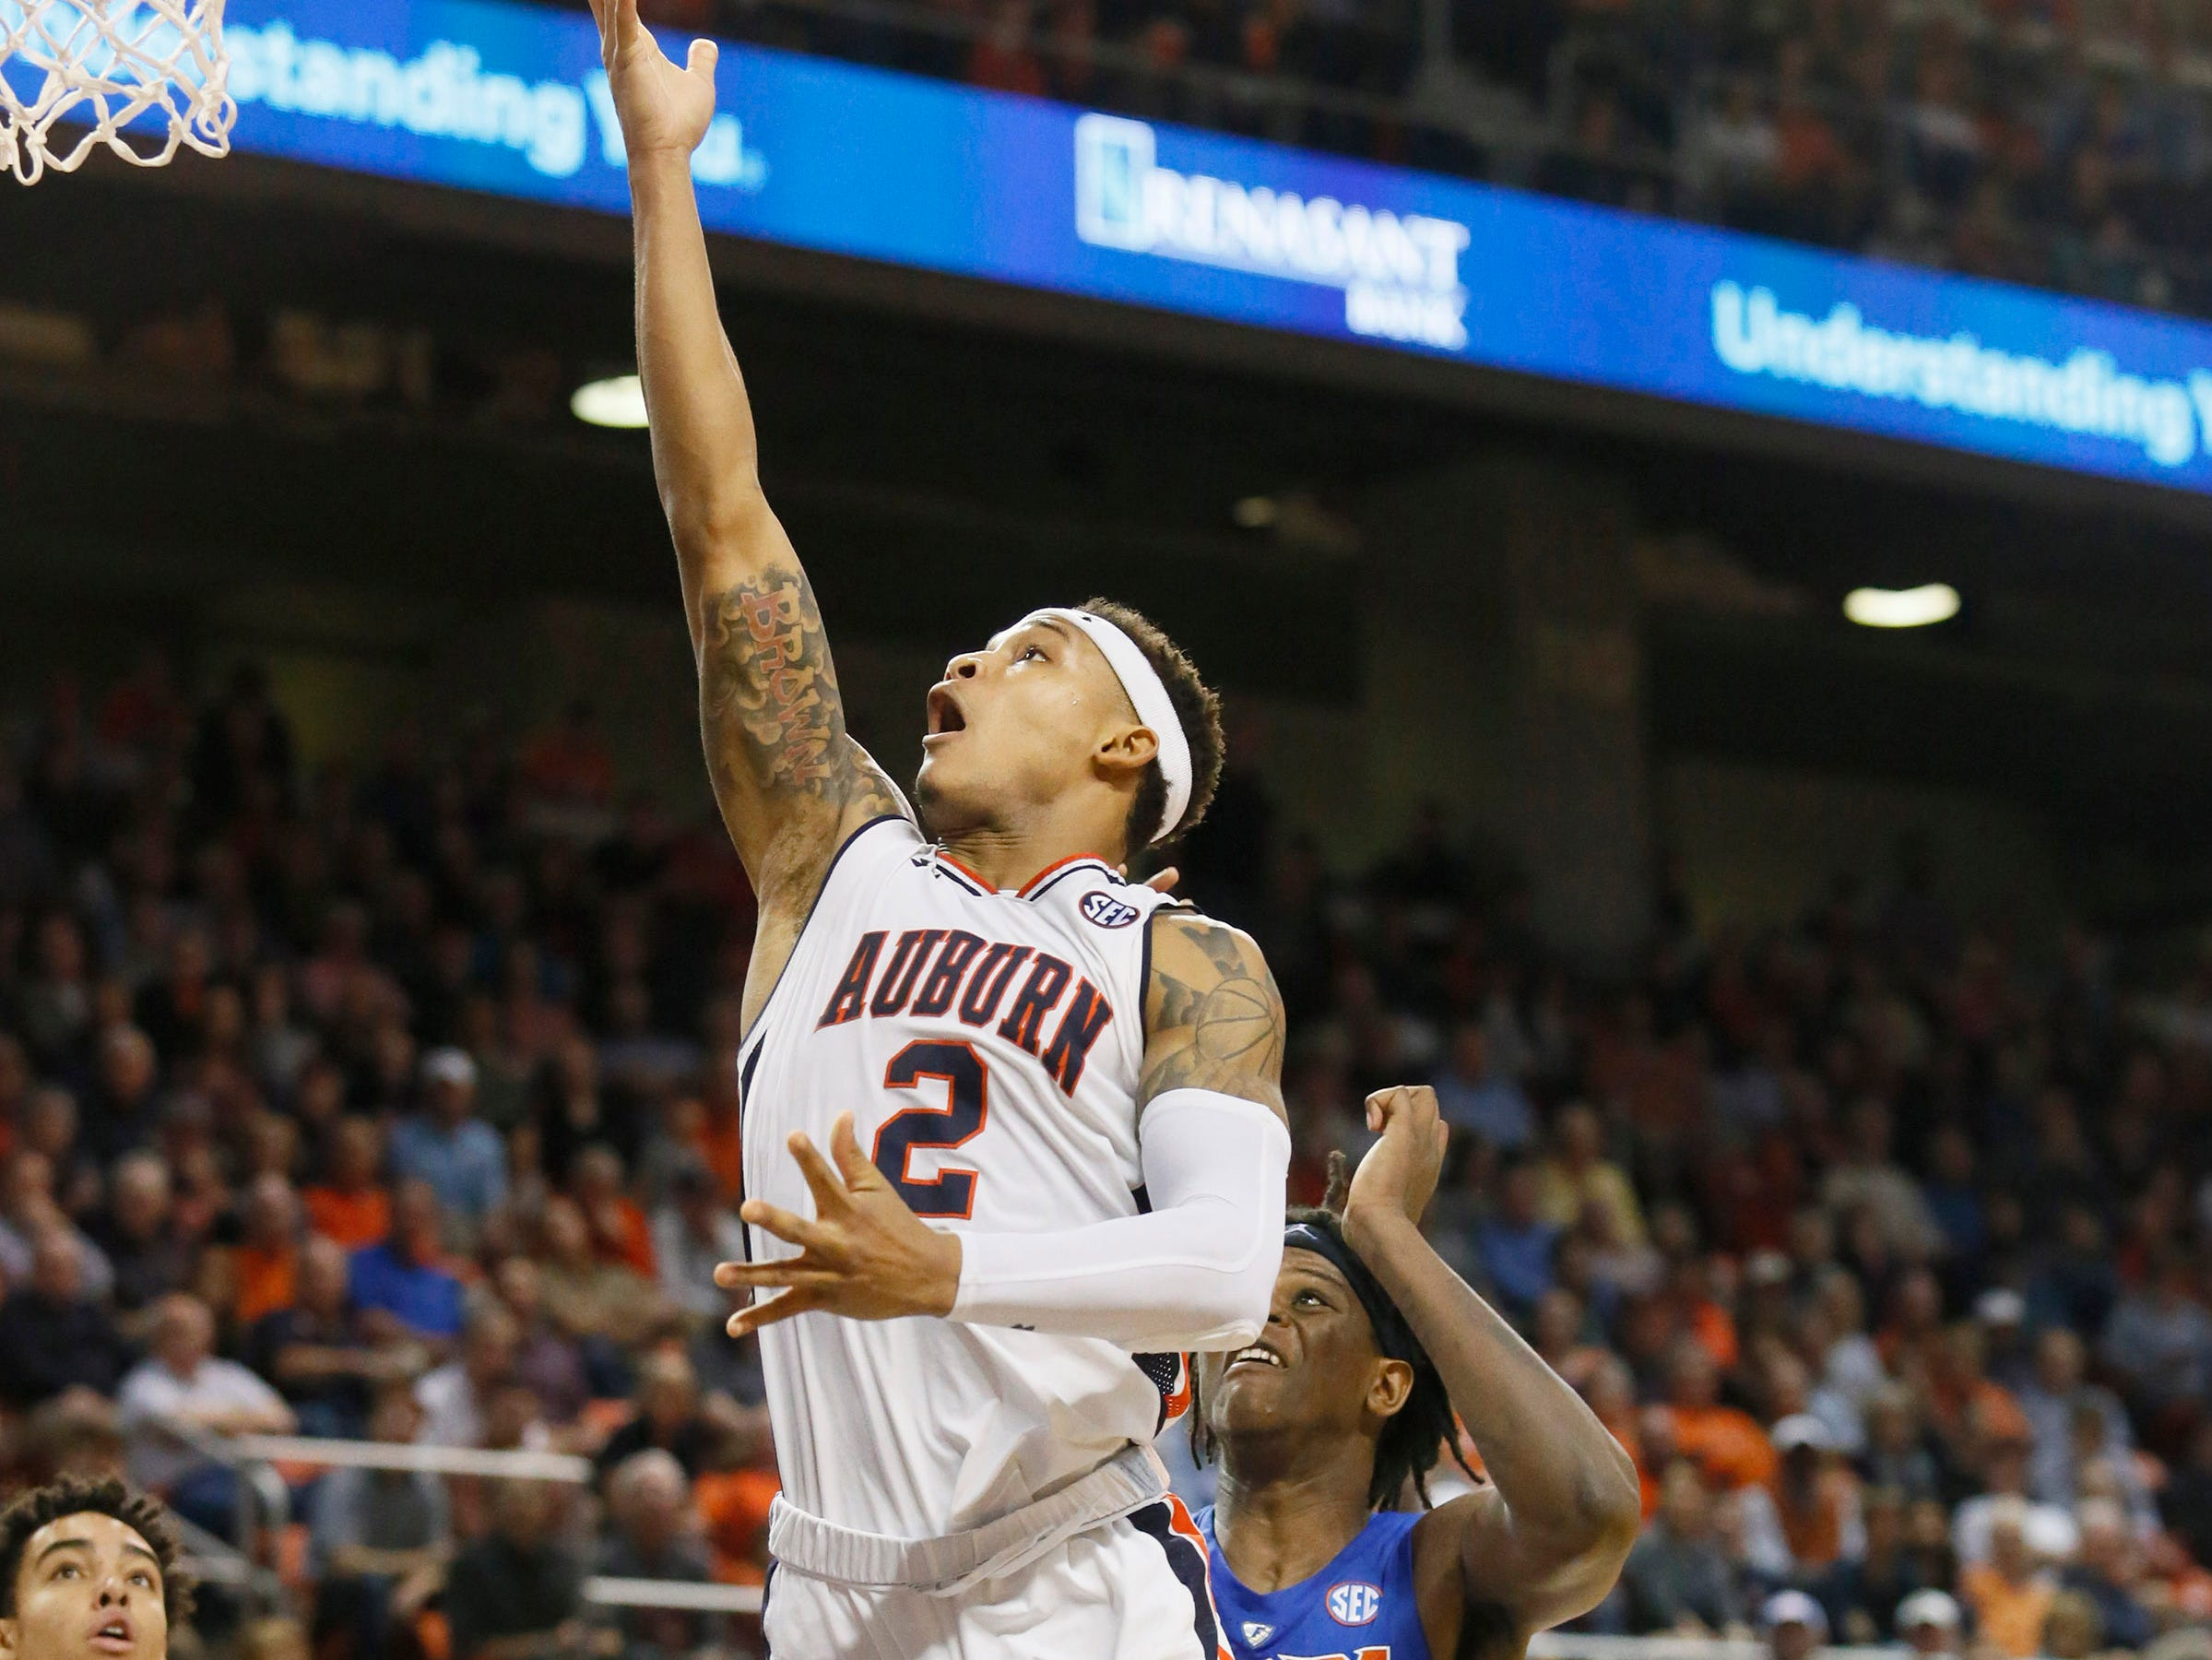 Feb 5, 2019; Auburn, AL, USA; Auburn Tigers guard Bryce Brown (10) goes for a shot against the Florida Gators during the second half at Auburn Arena. Mandatory Credit: John Reed-USA TODAY Sports